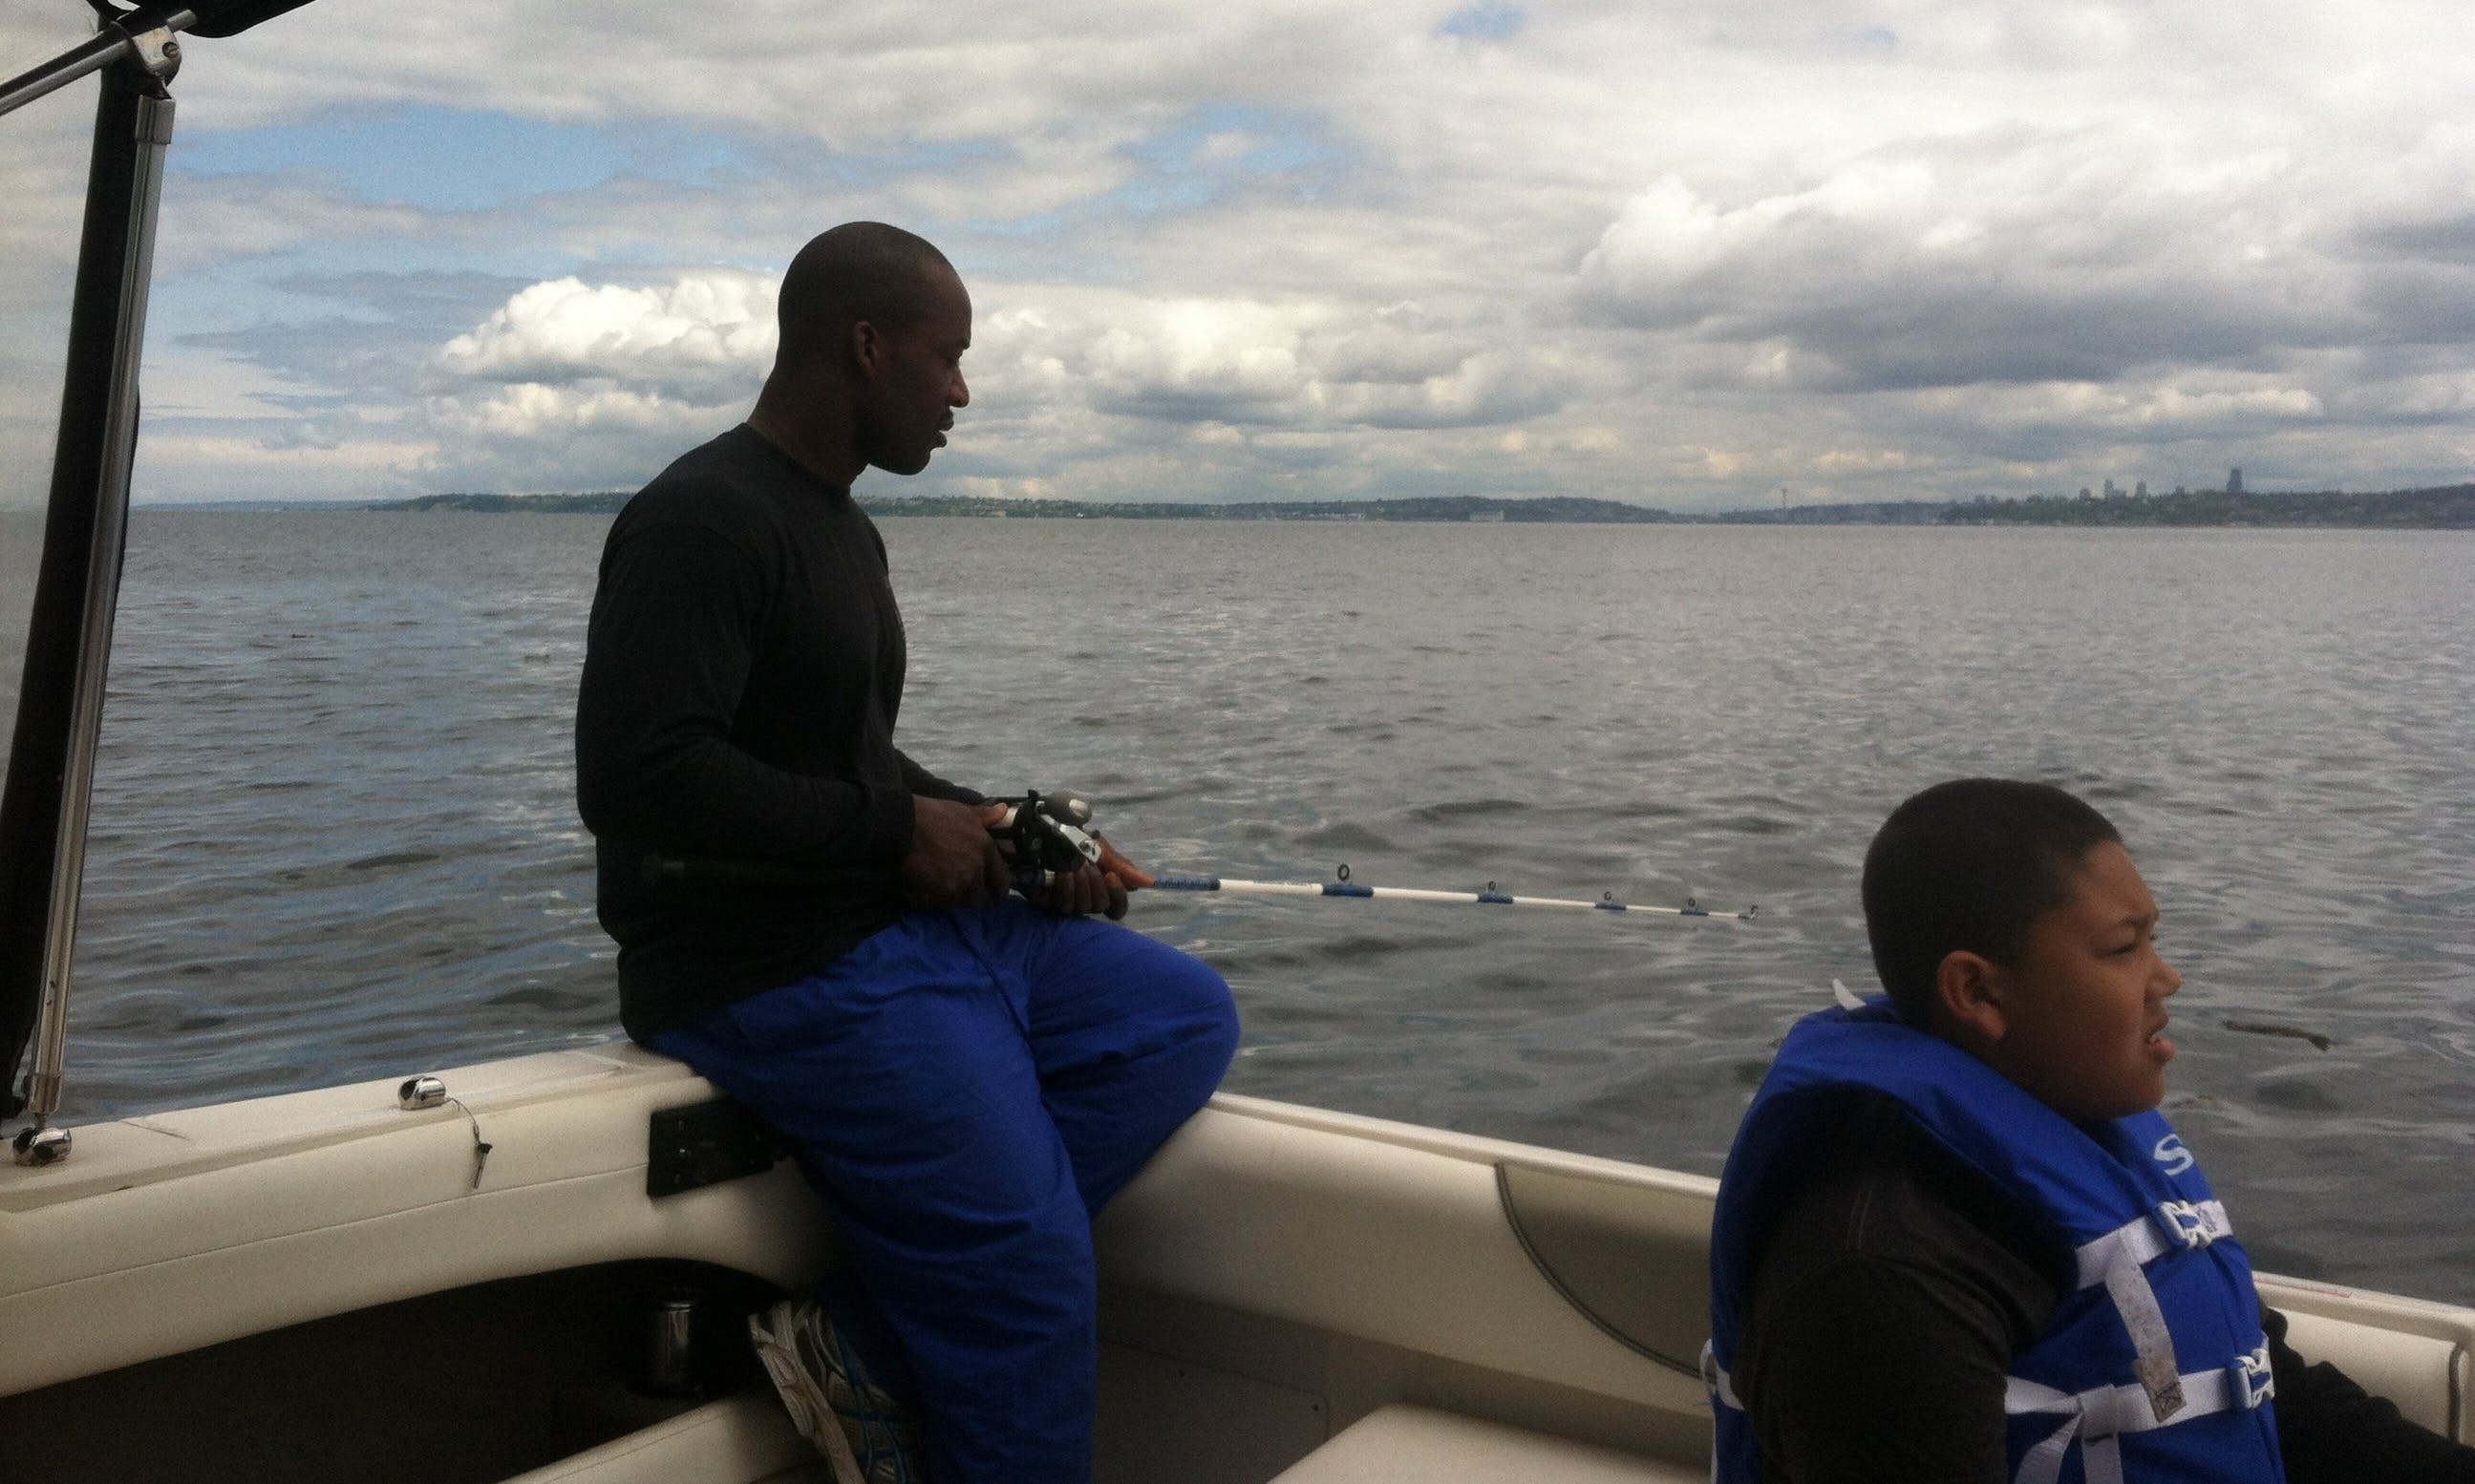 Fishing Charter in Port Orchard, WA